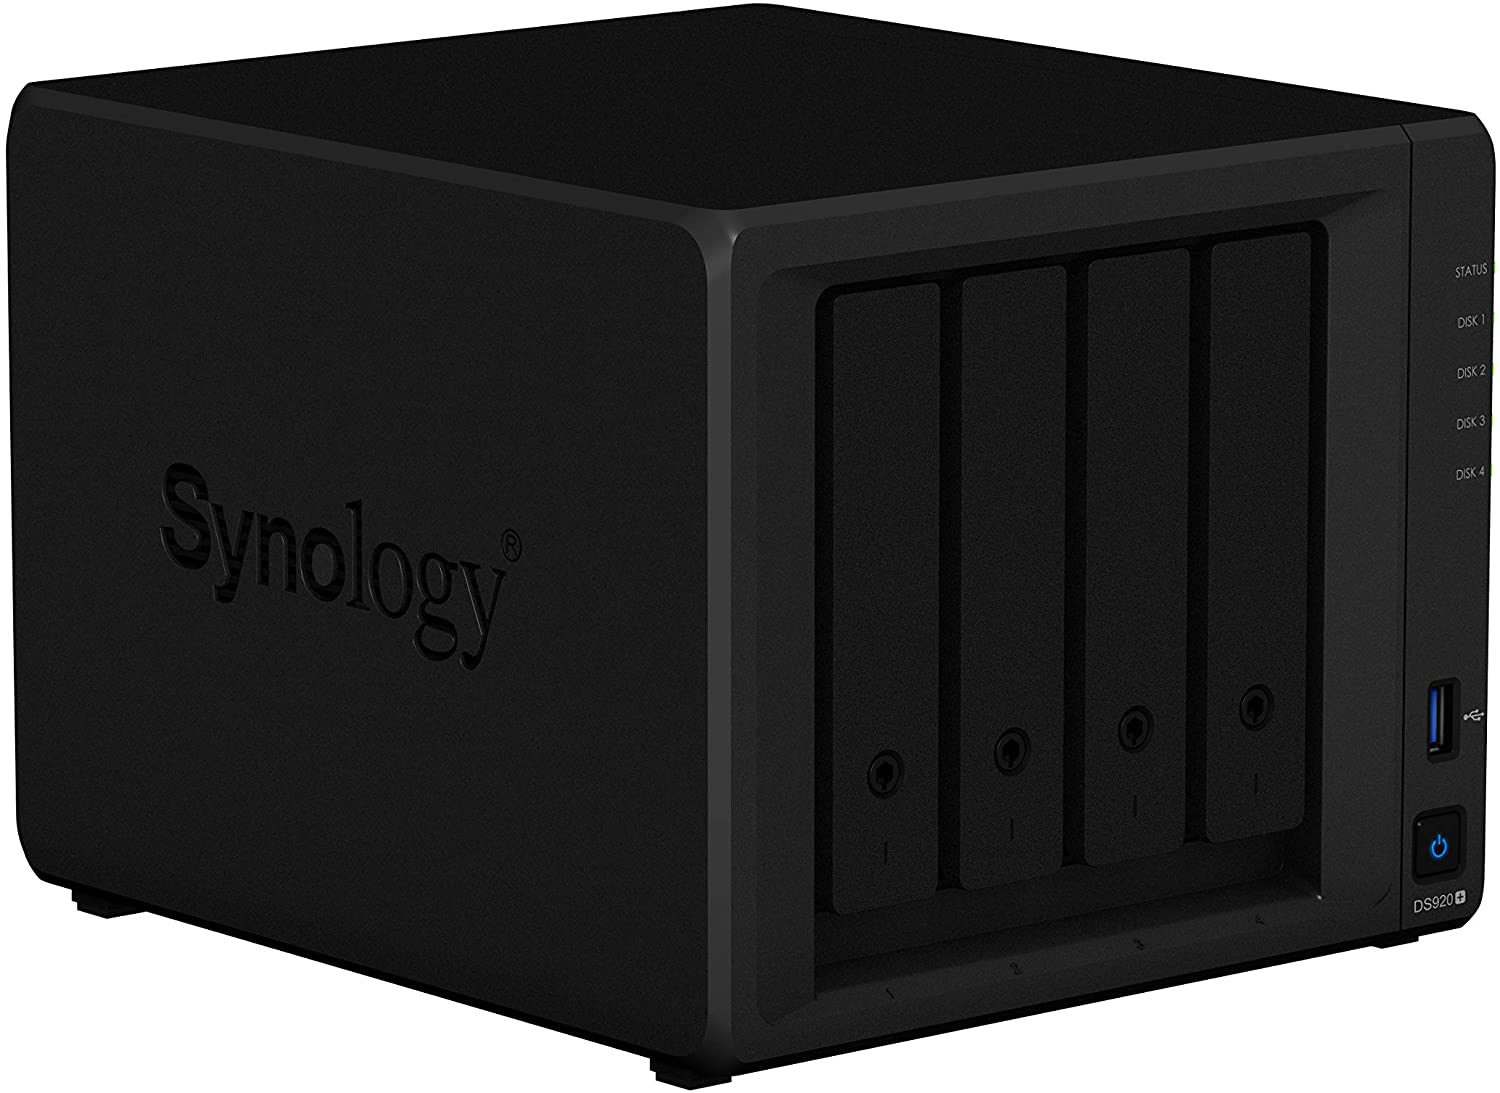 56TB 4 Bay Desktop NAS Solution installed with 4 x 14TB Toshiba N300 Drives Synology DS920